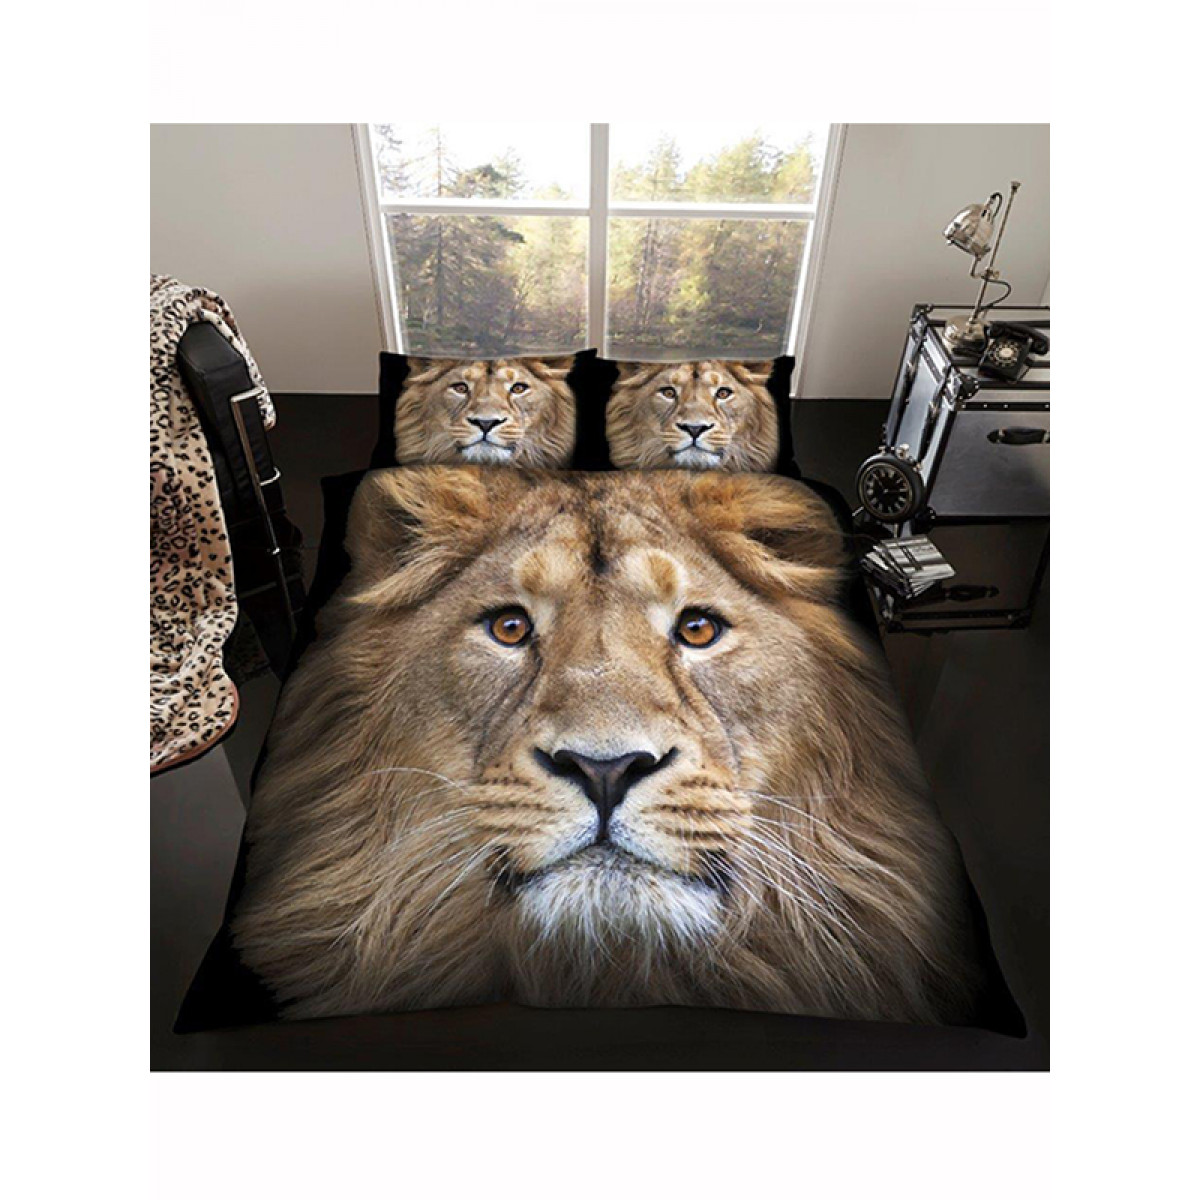 Lion Double Duvet Cover And Pillowcase Set Bedroom Bedding